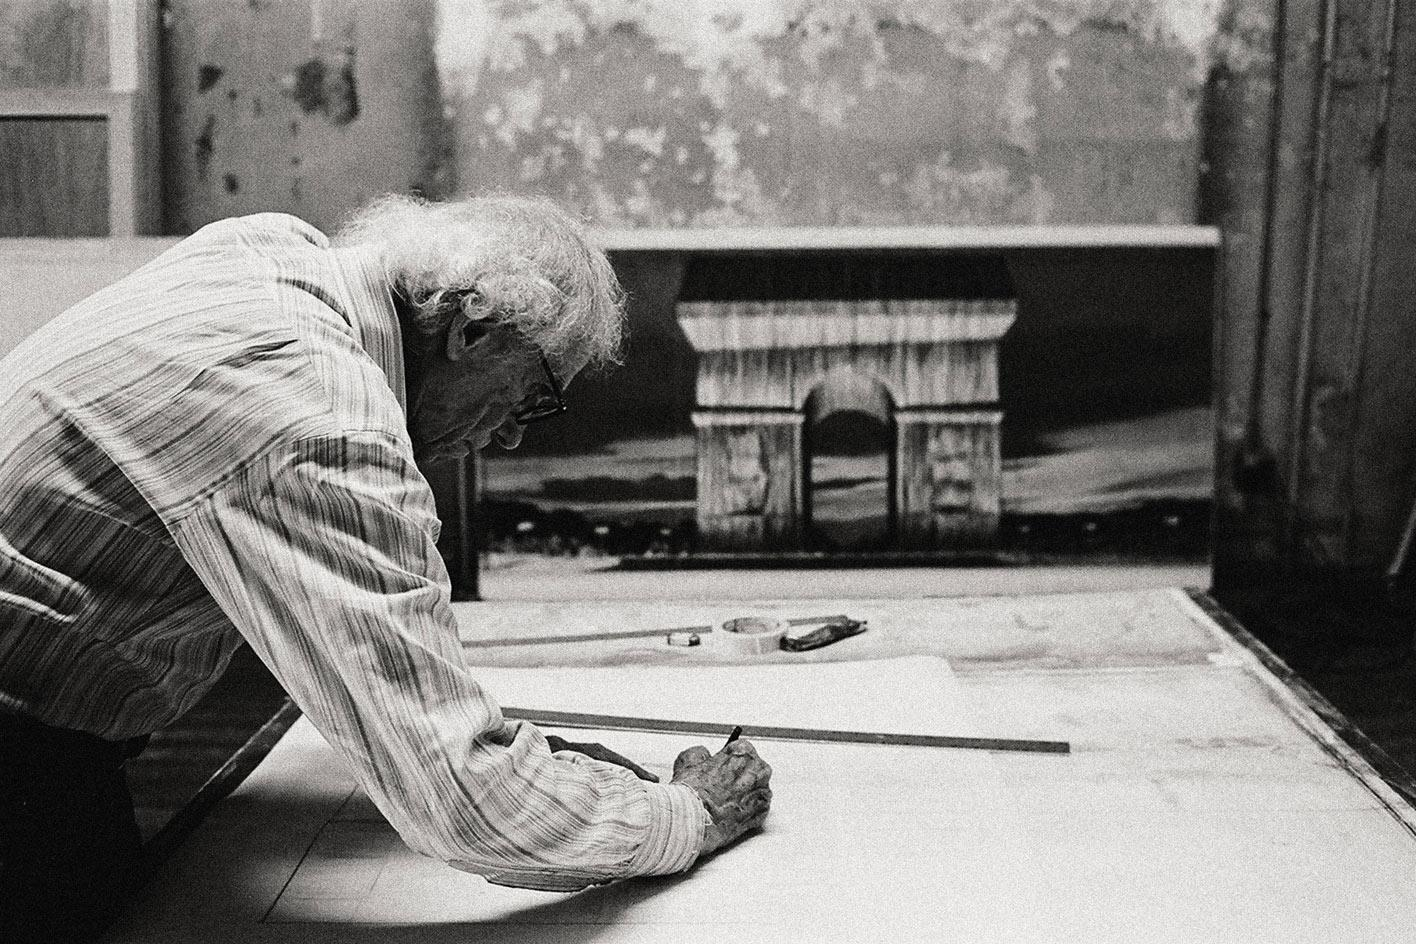 Christo in his studio working on a preparatory drawing for L'Arc de Triomphe, Wrapped,New York City, 2020